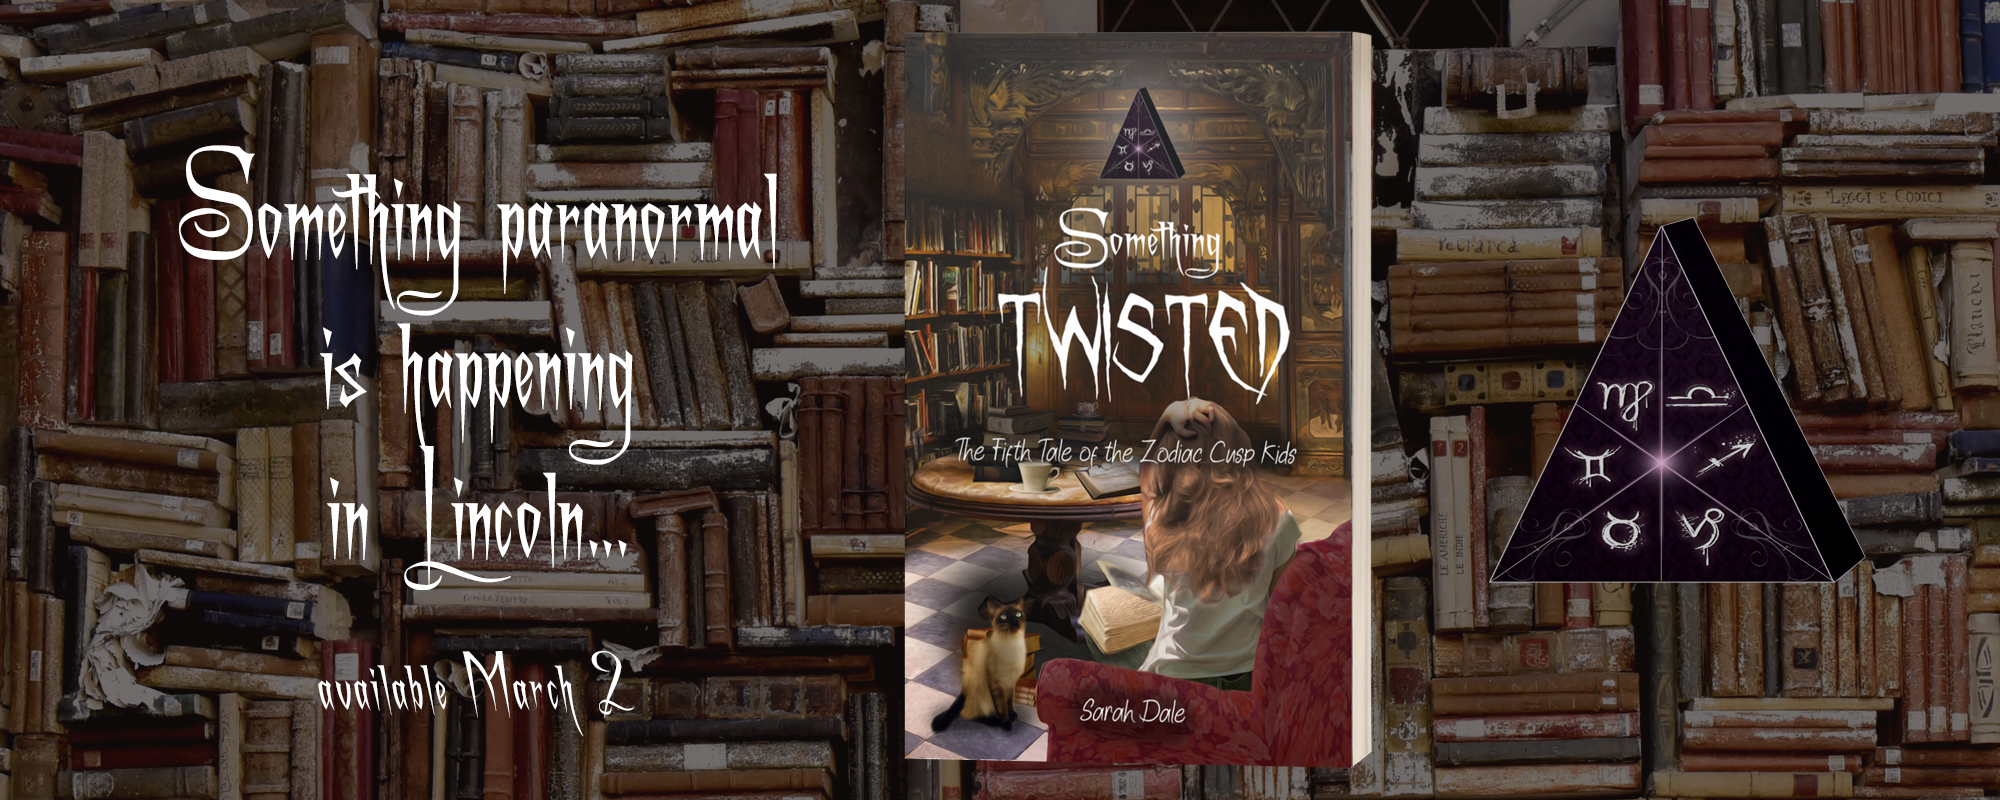 Something Twisted by Sarah Dale, coming soon